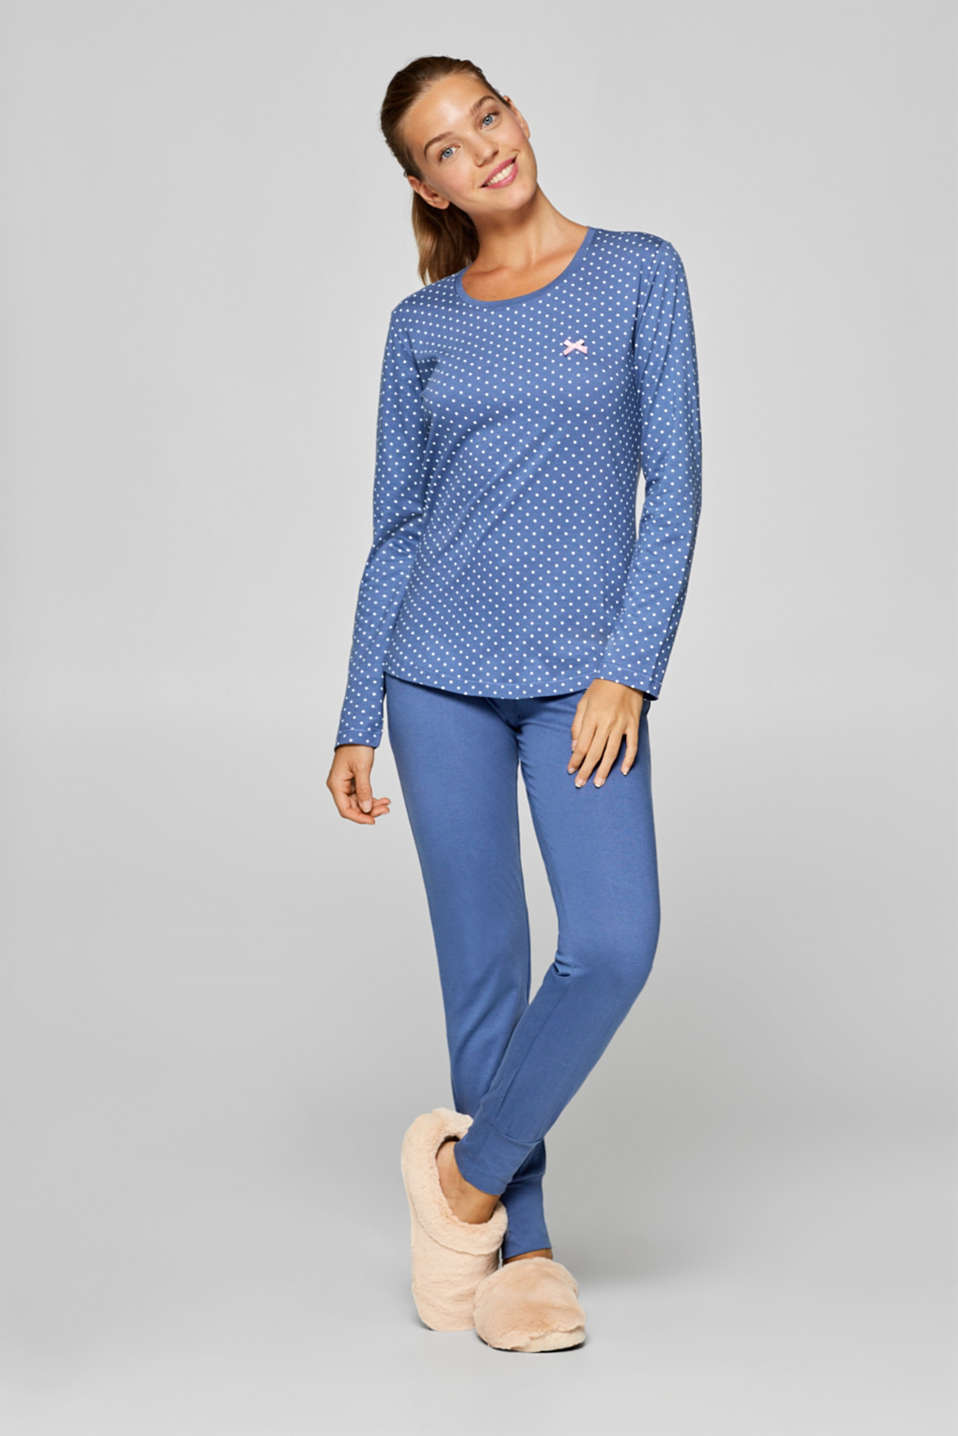 Esprit - Polka dot print pyjamas, 100% cotton